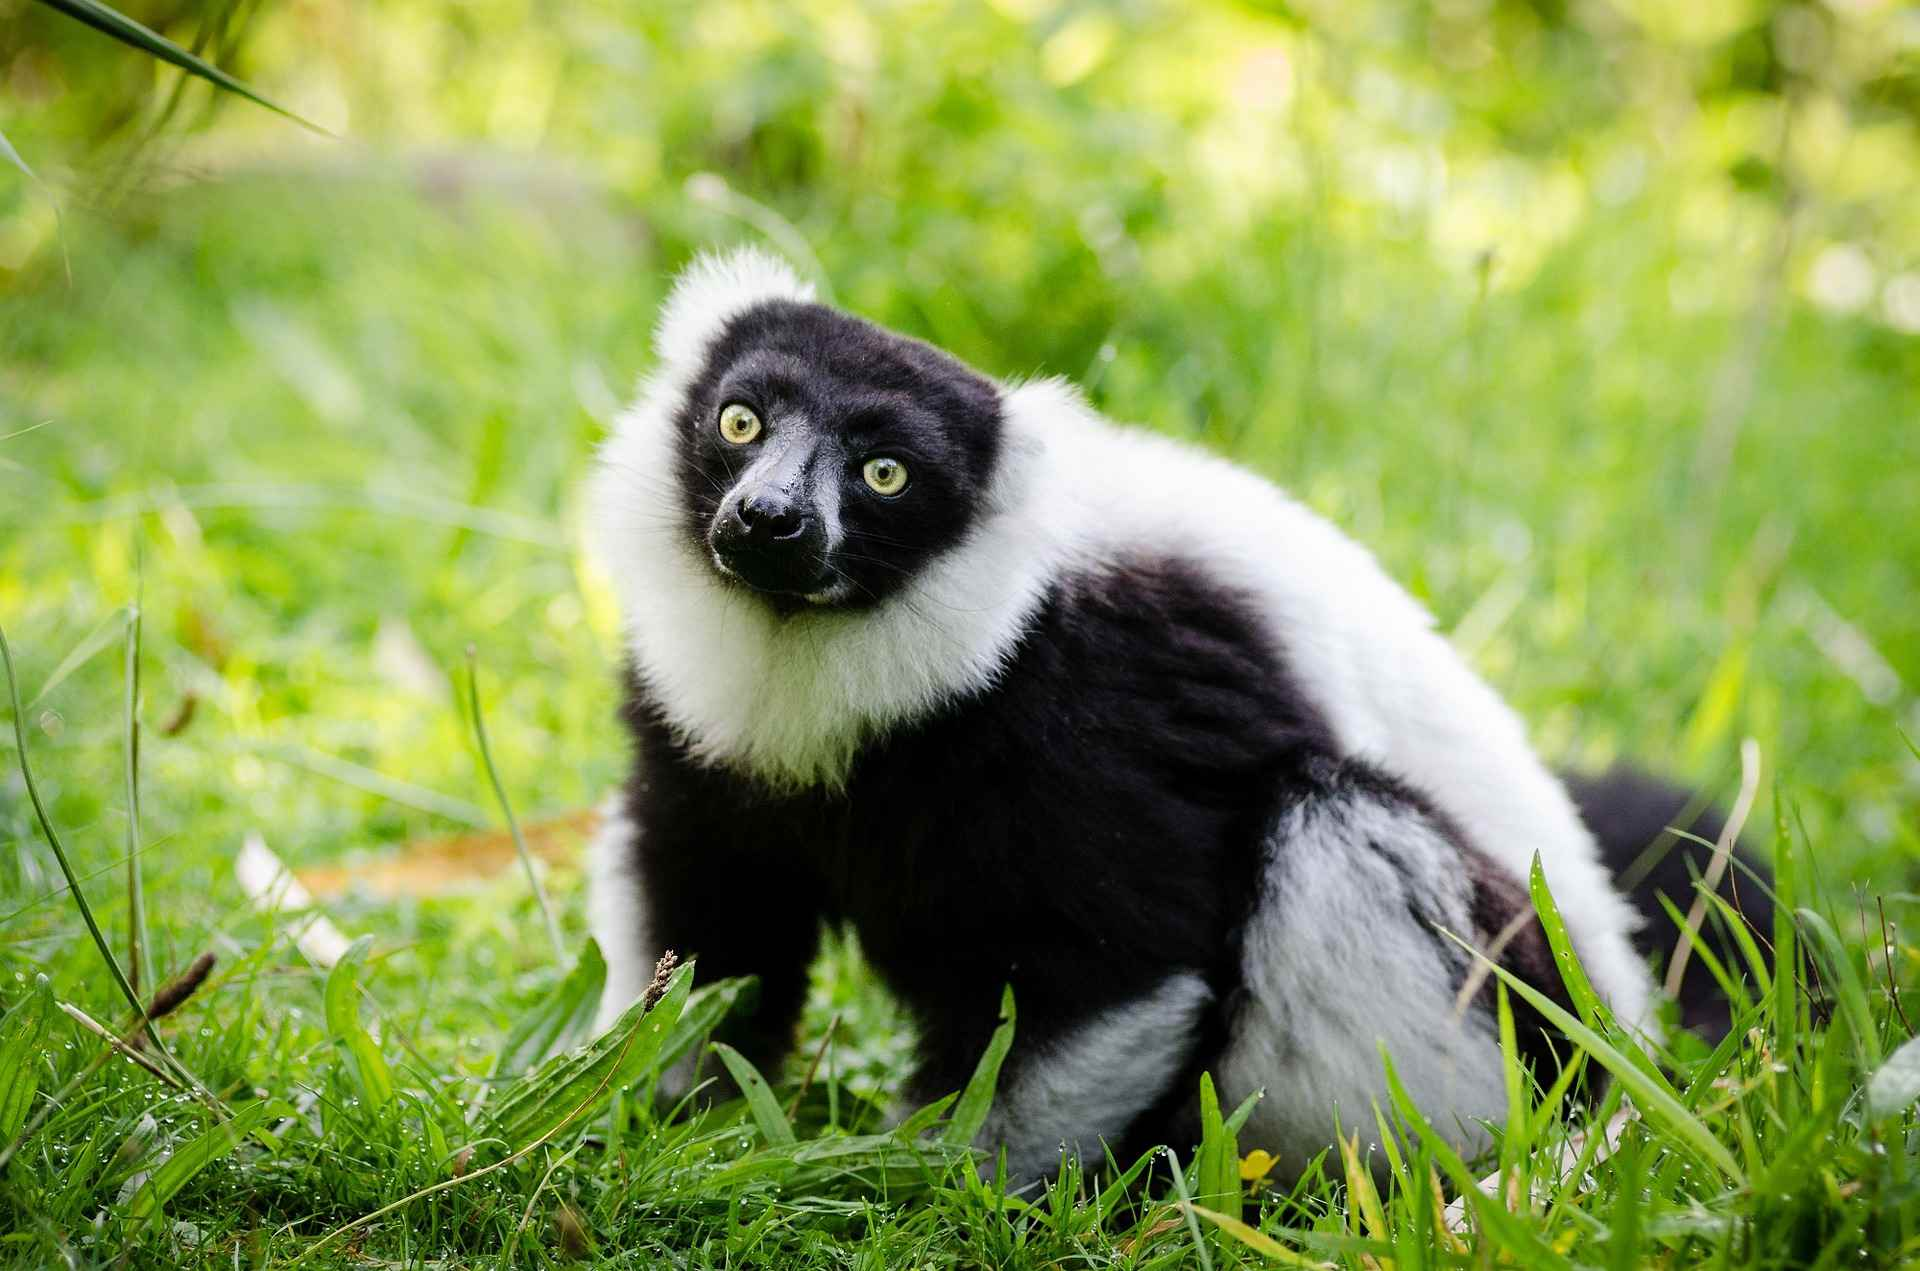 Indri sitting in the grass staring at the camera.